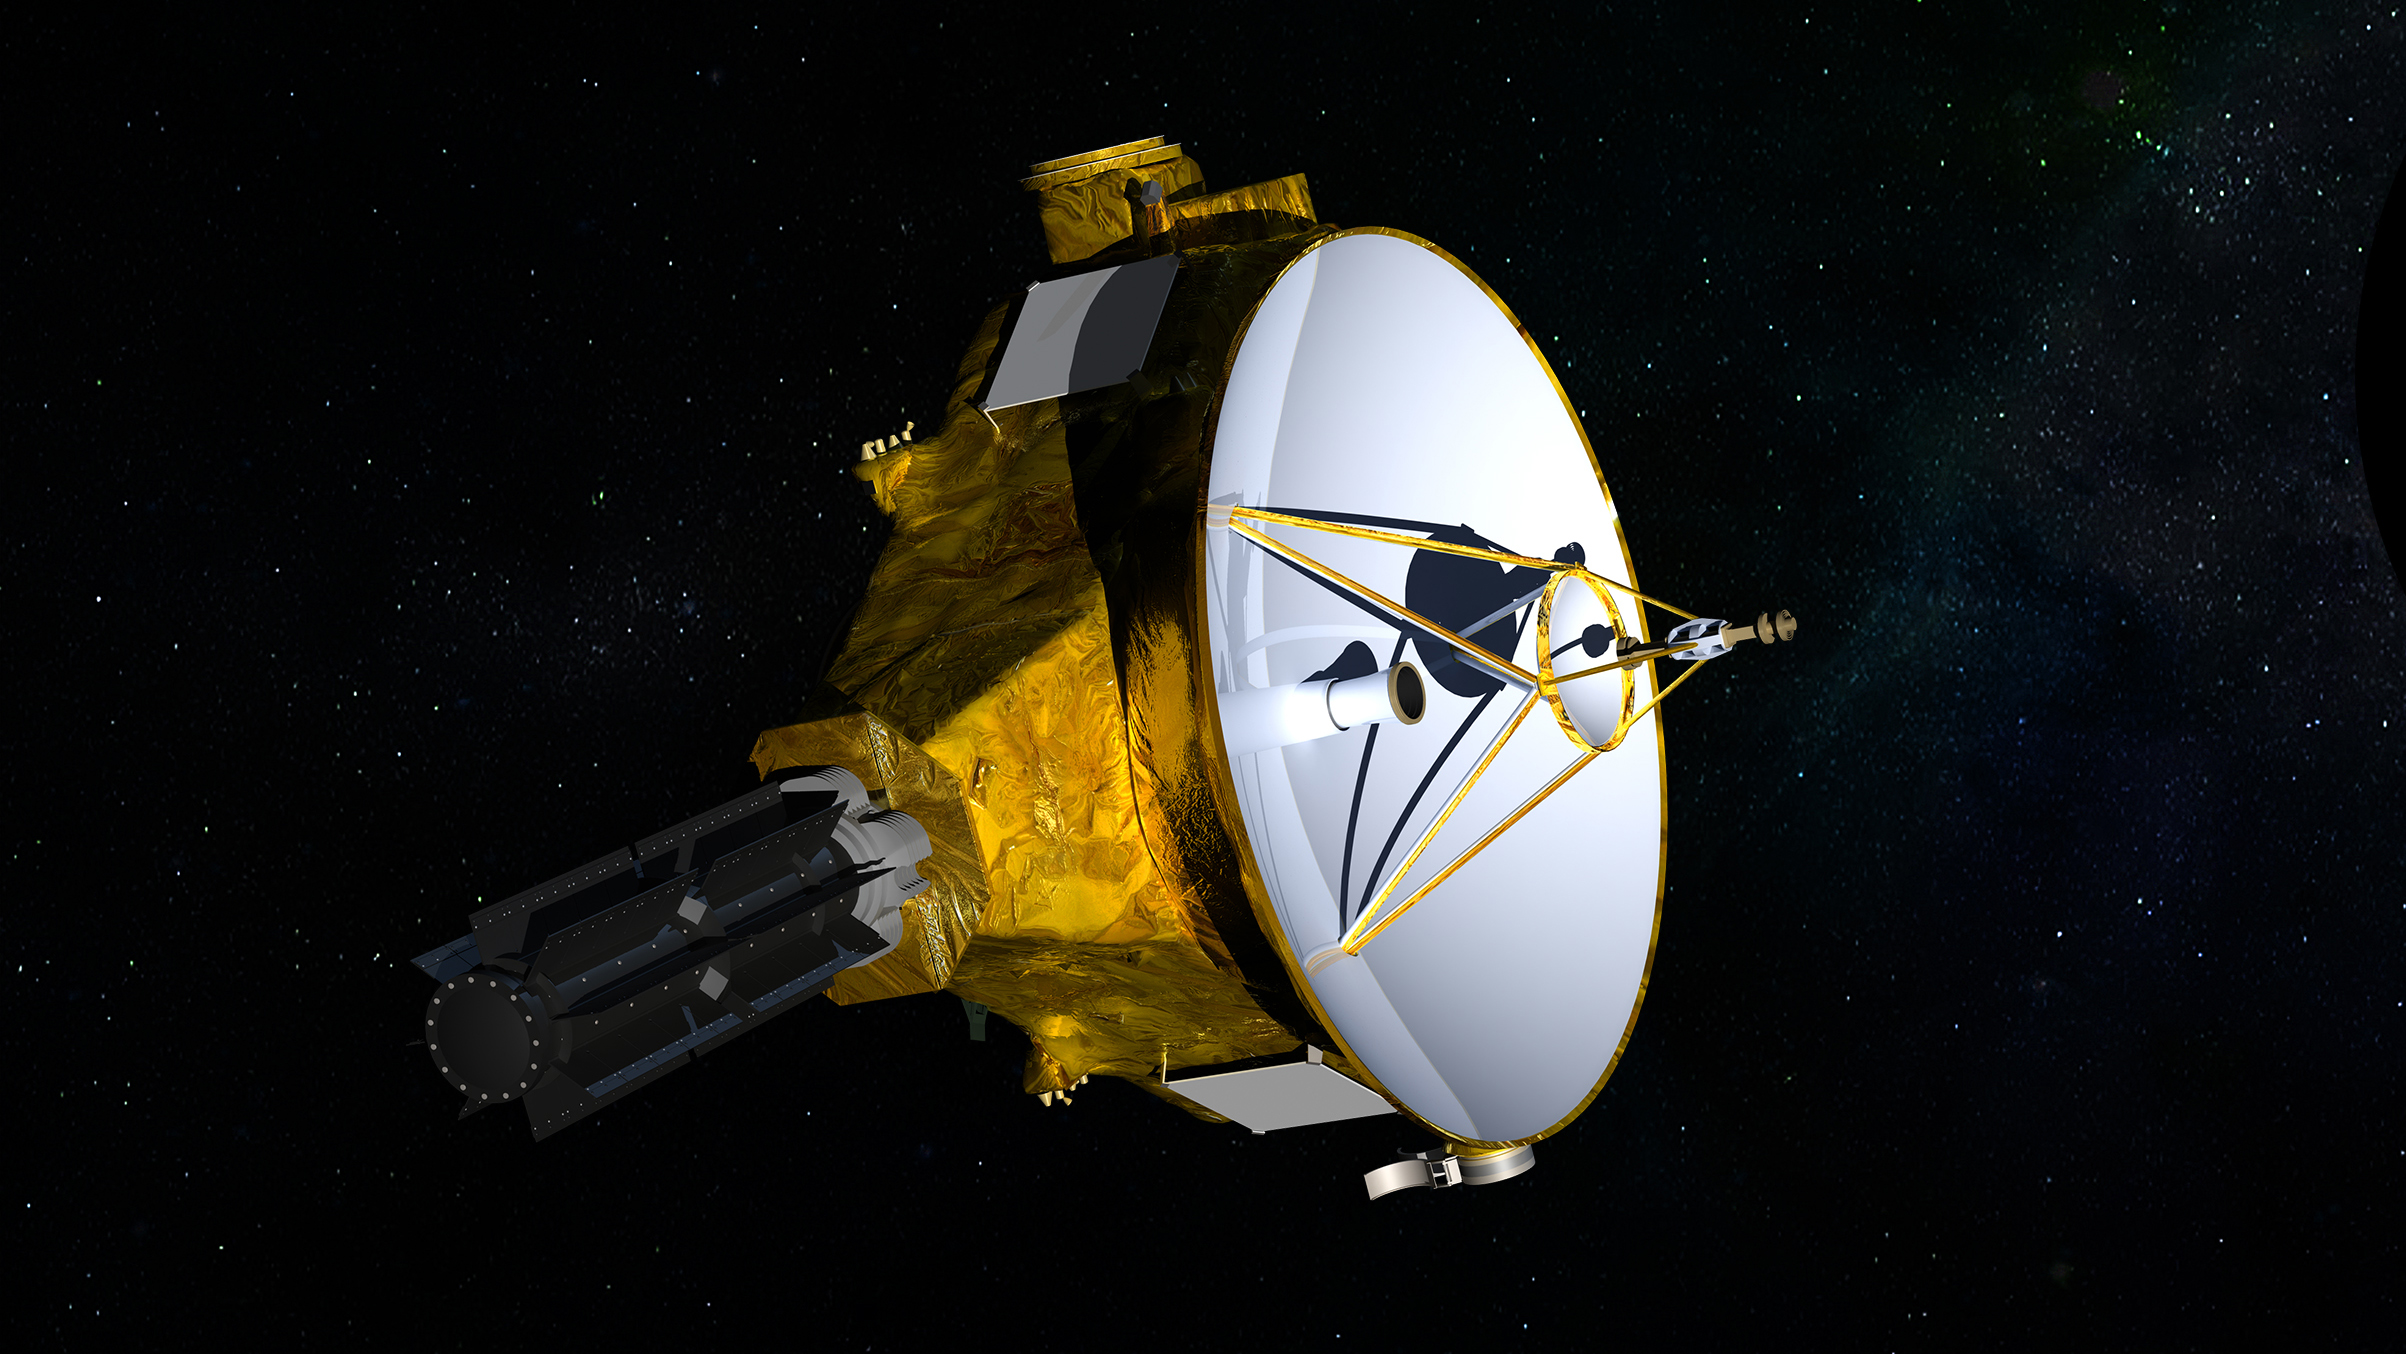 nasa new horizons probe - photo #11